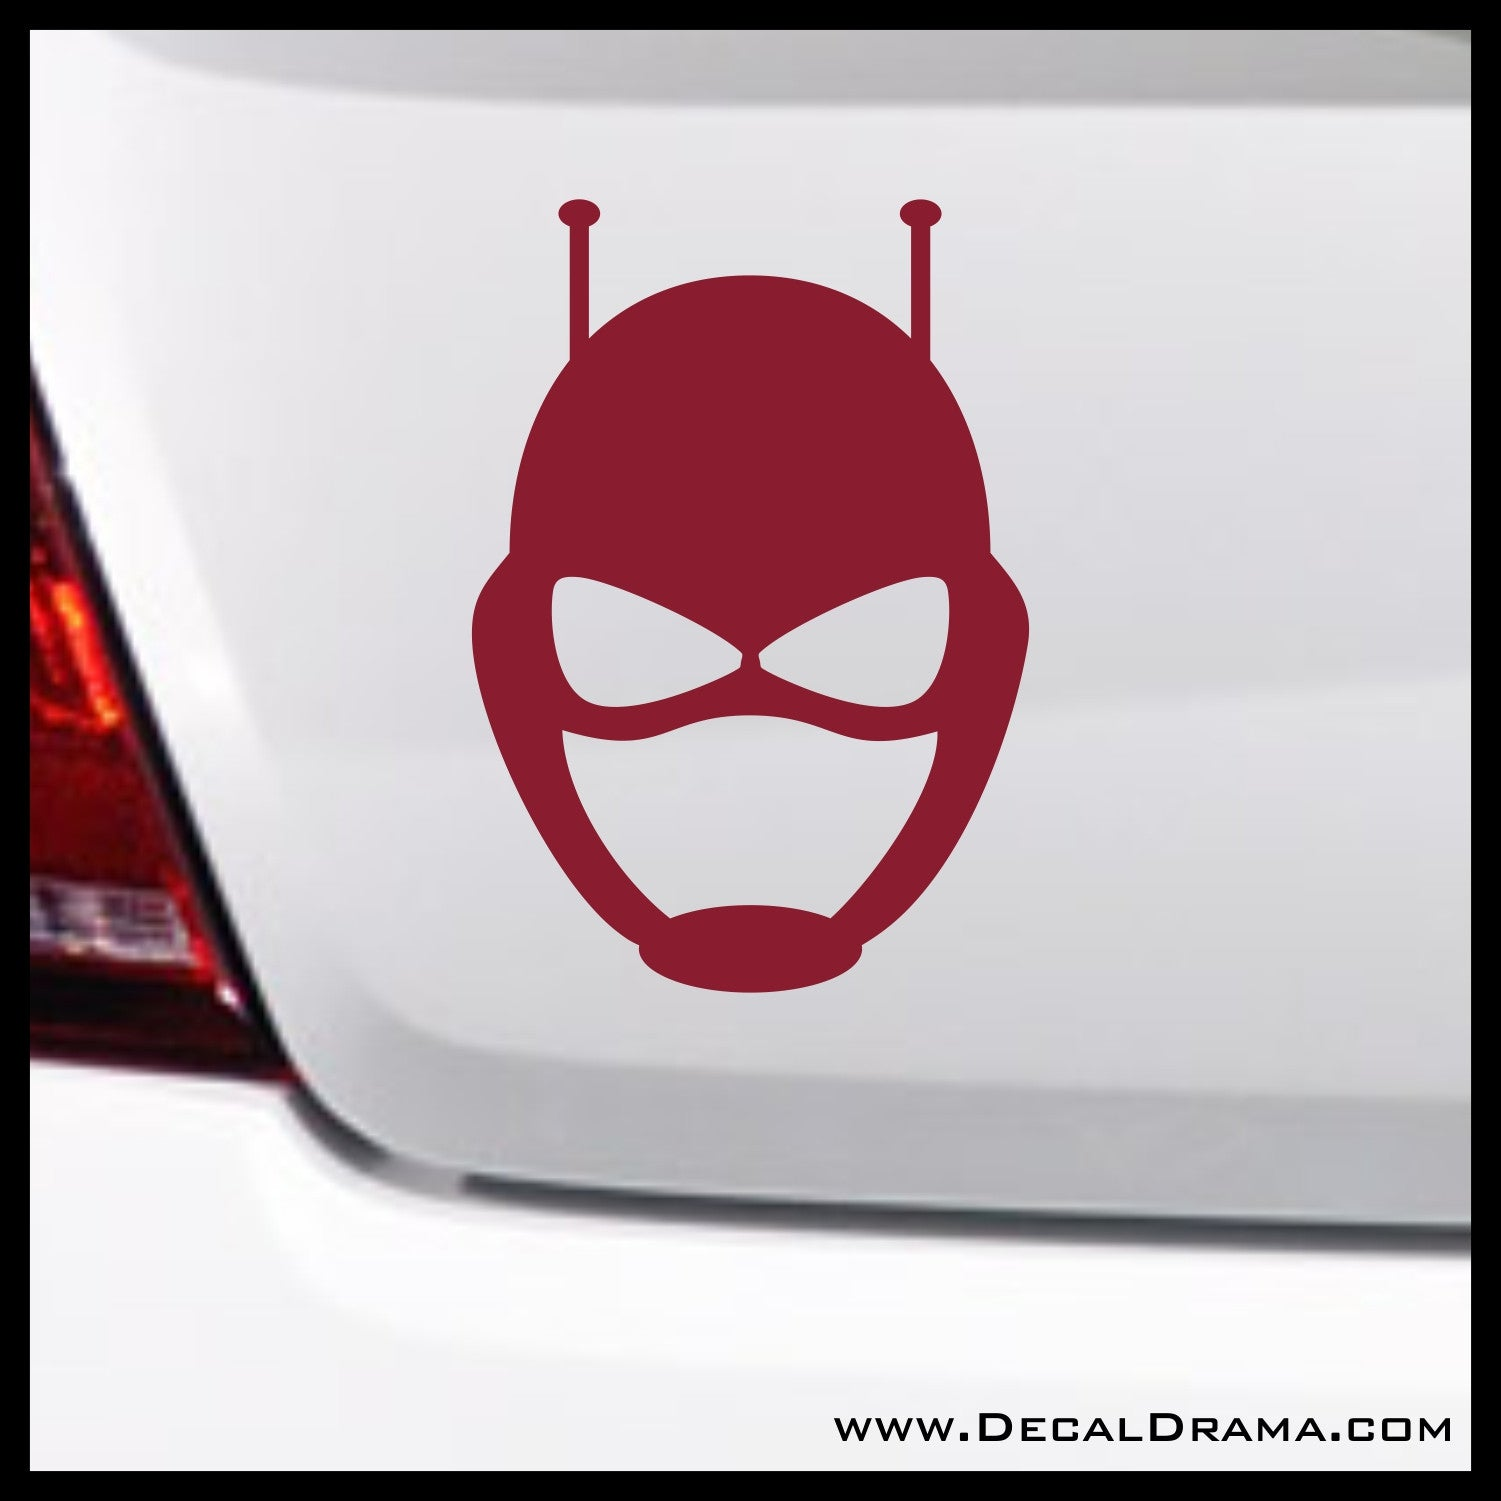 Antman Mask emblem, Marvel Comics Avengers, Vinyl Car/Laptop Decal